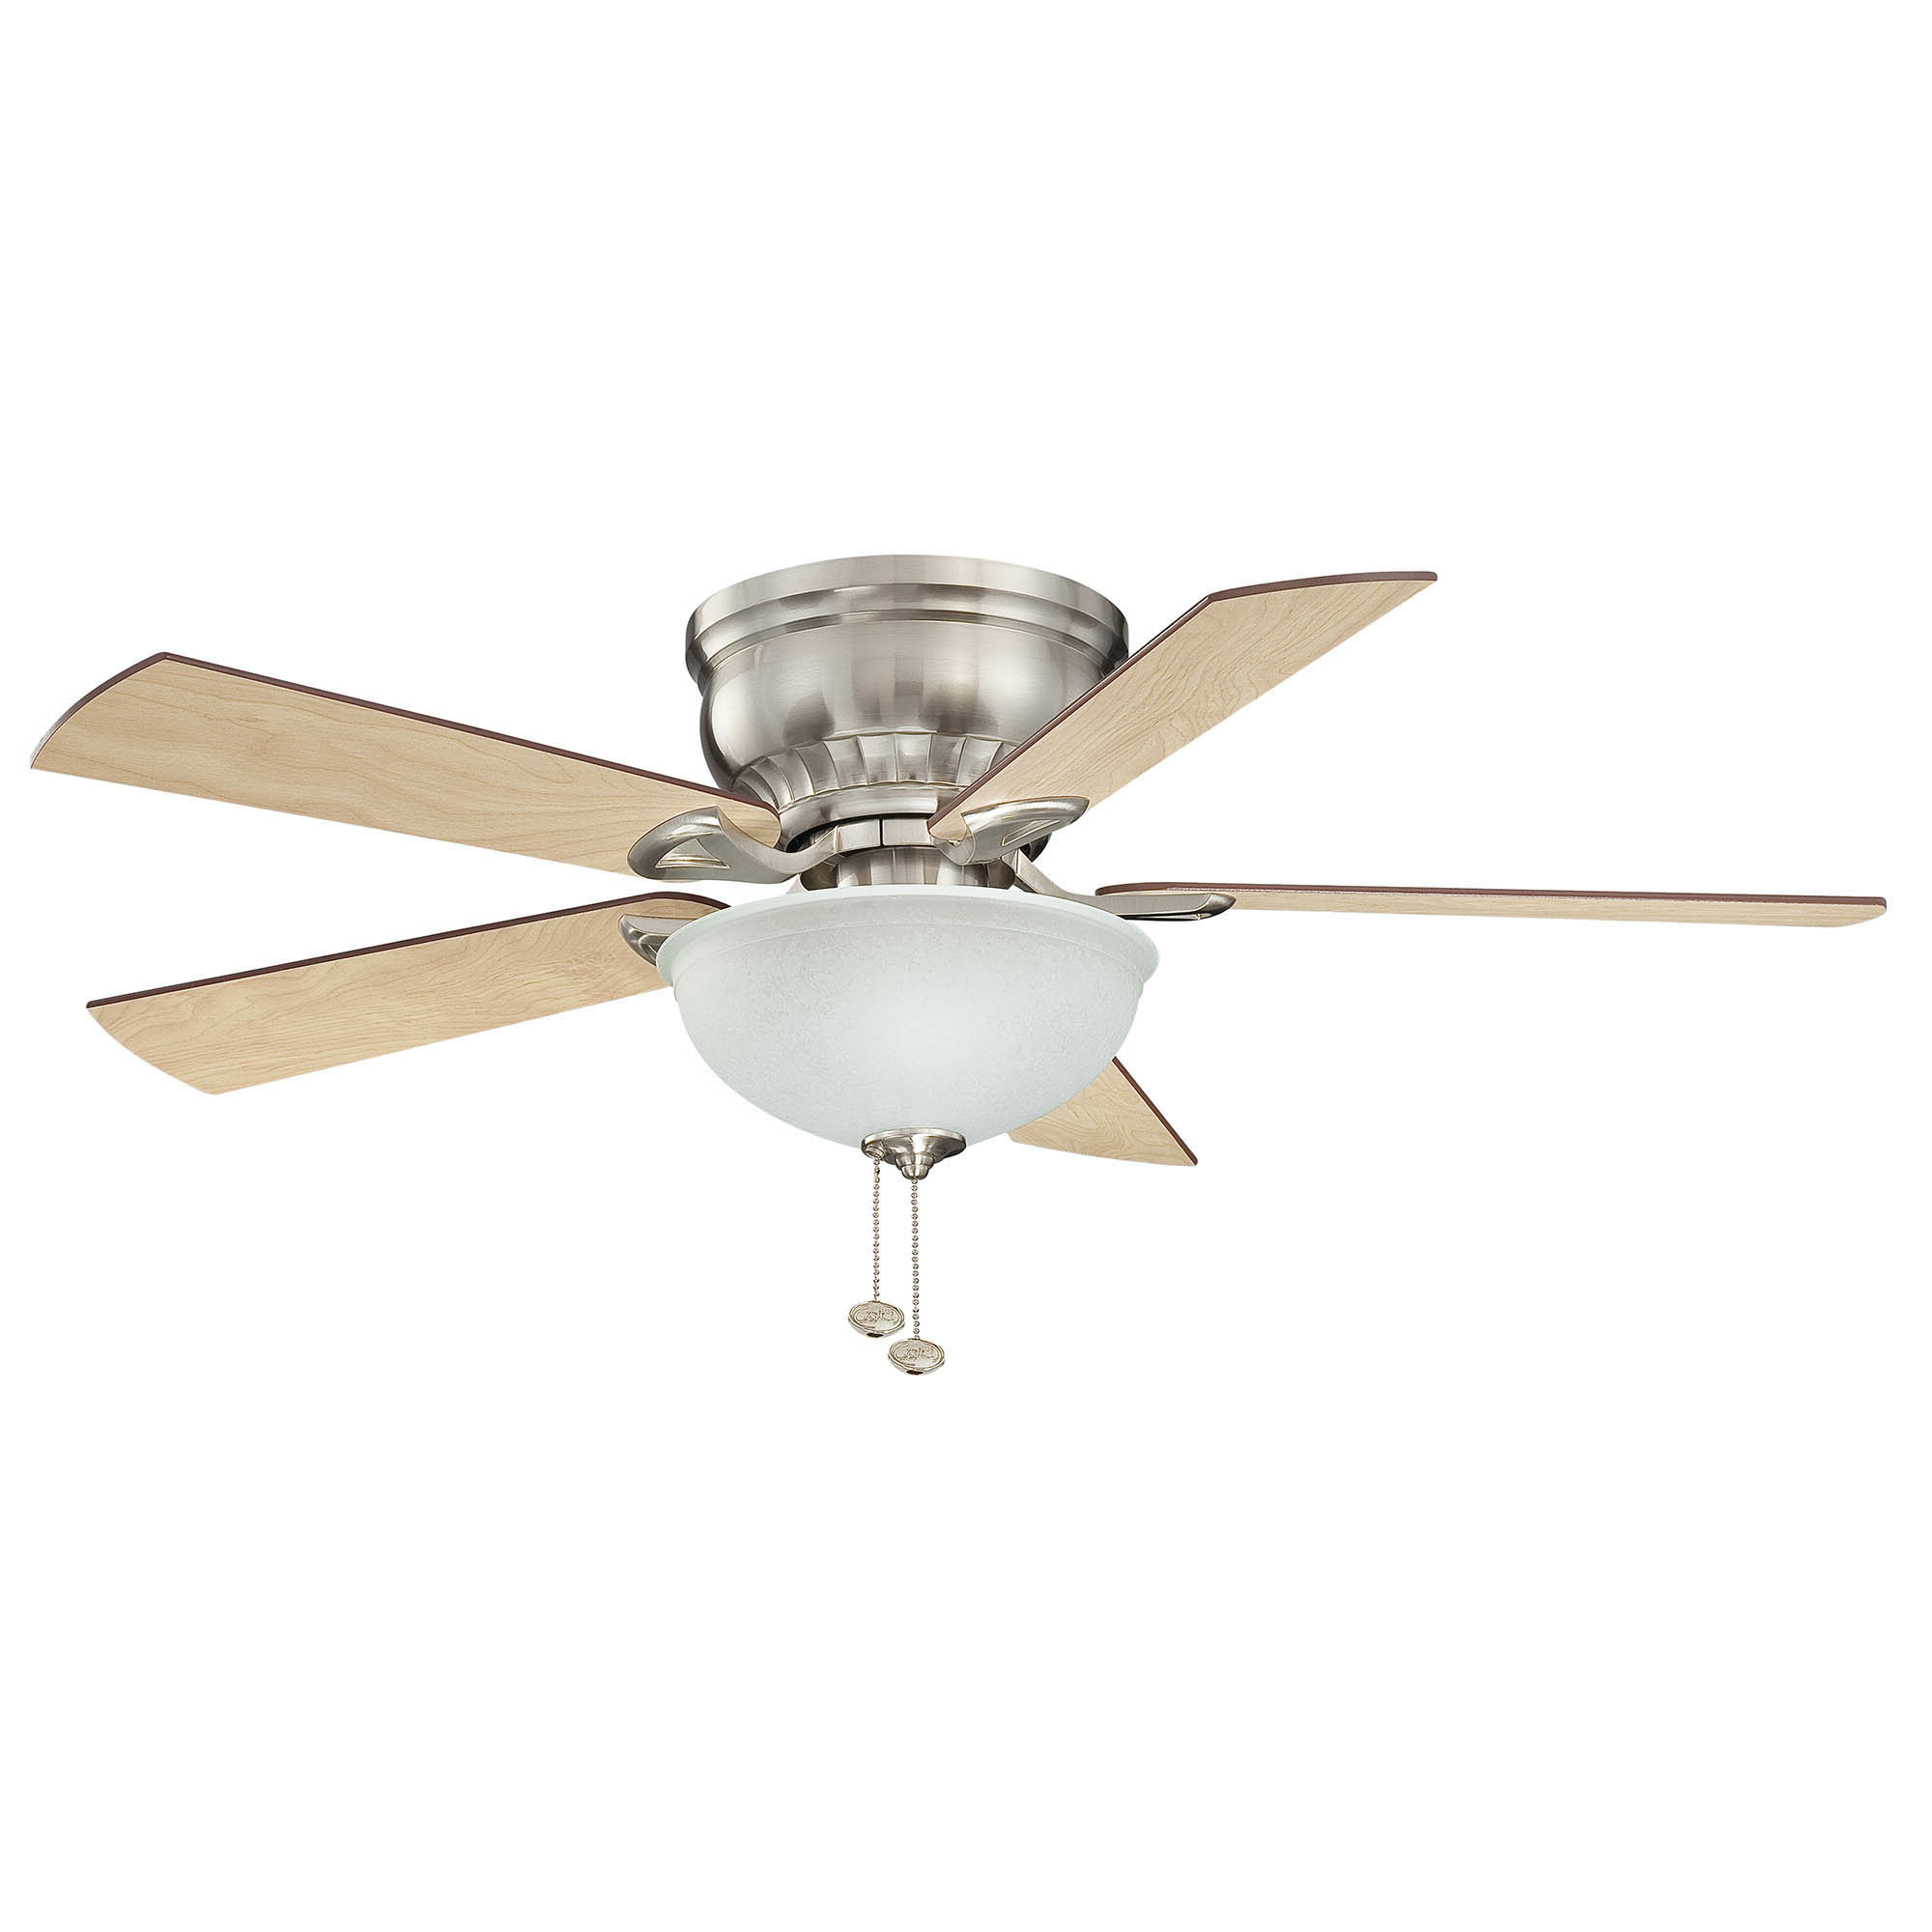 """Newest 44"""" Scruggs Flushmount 5 Blade Ceiling Fan, Light Kit With Regard To Eliora 5 Blade Ceiling Fans (Gallery 8 of 20)"""